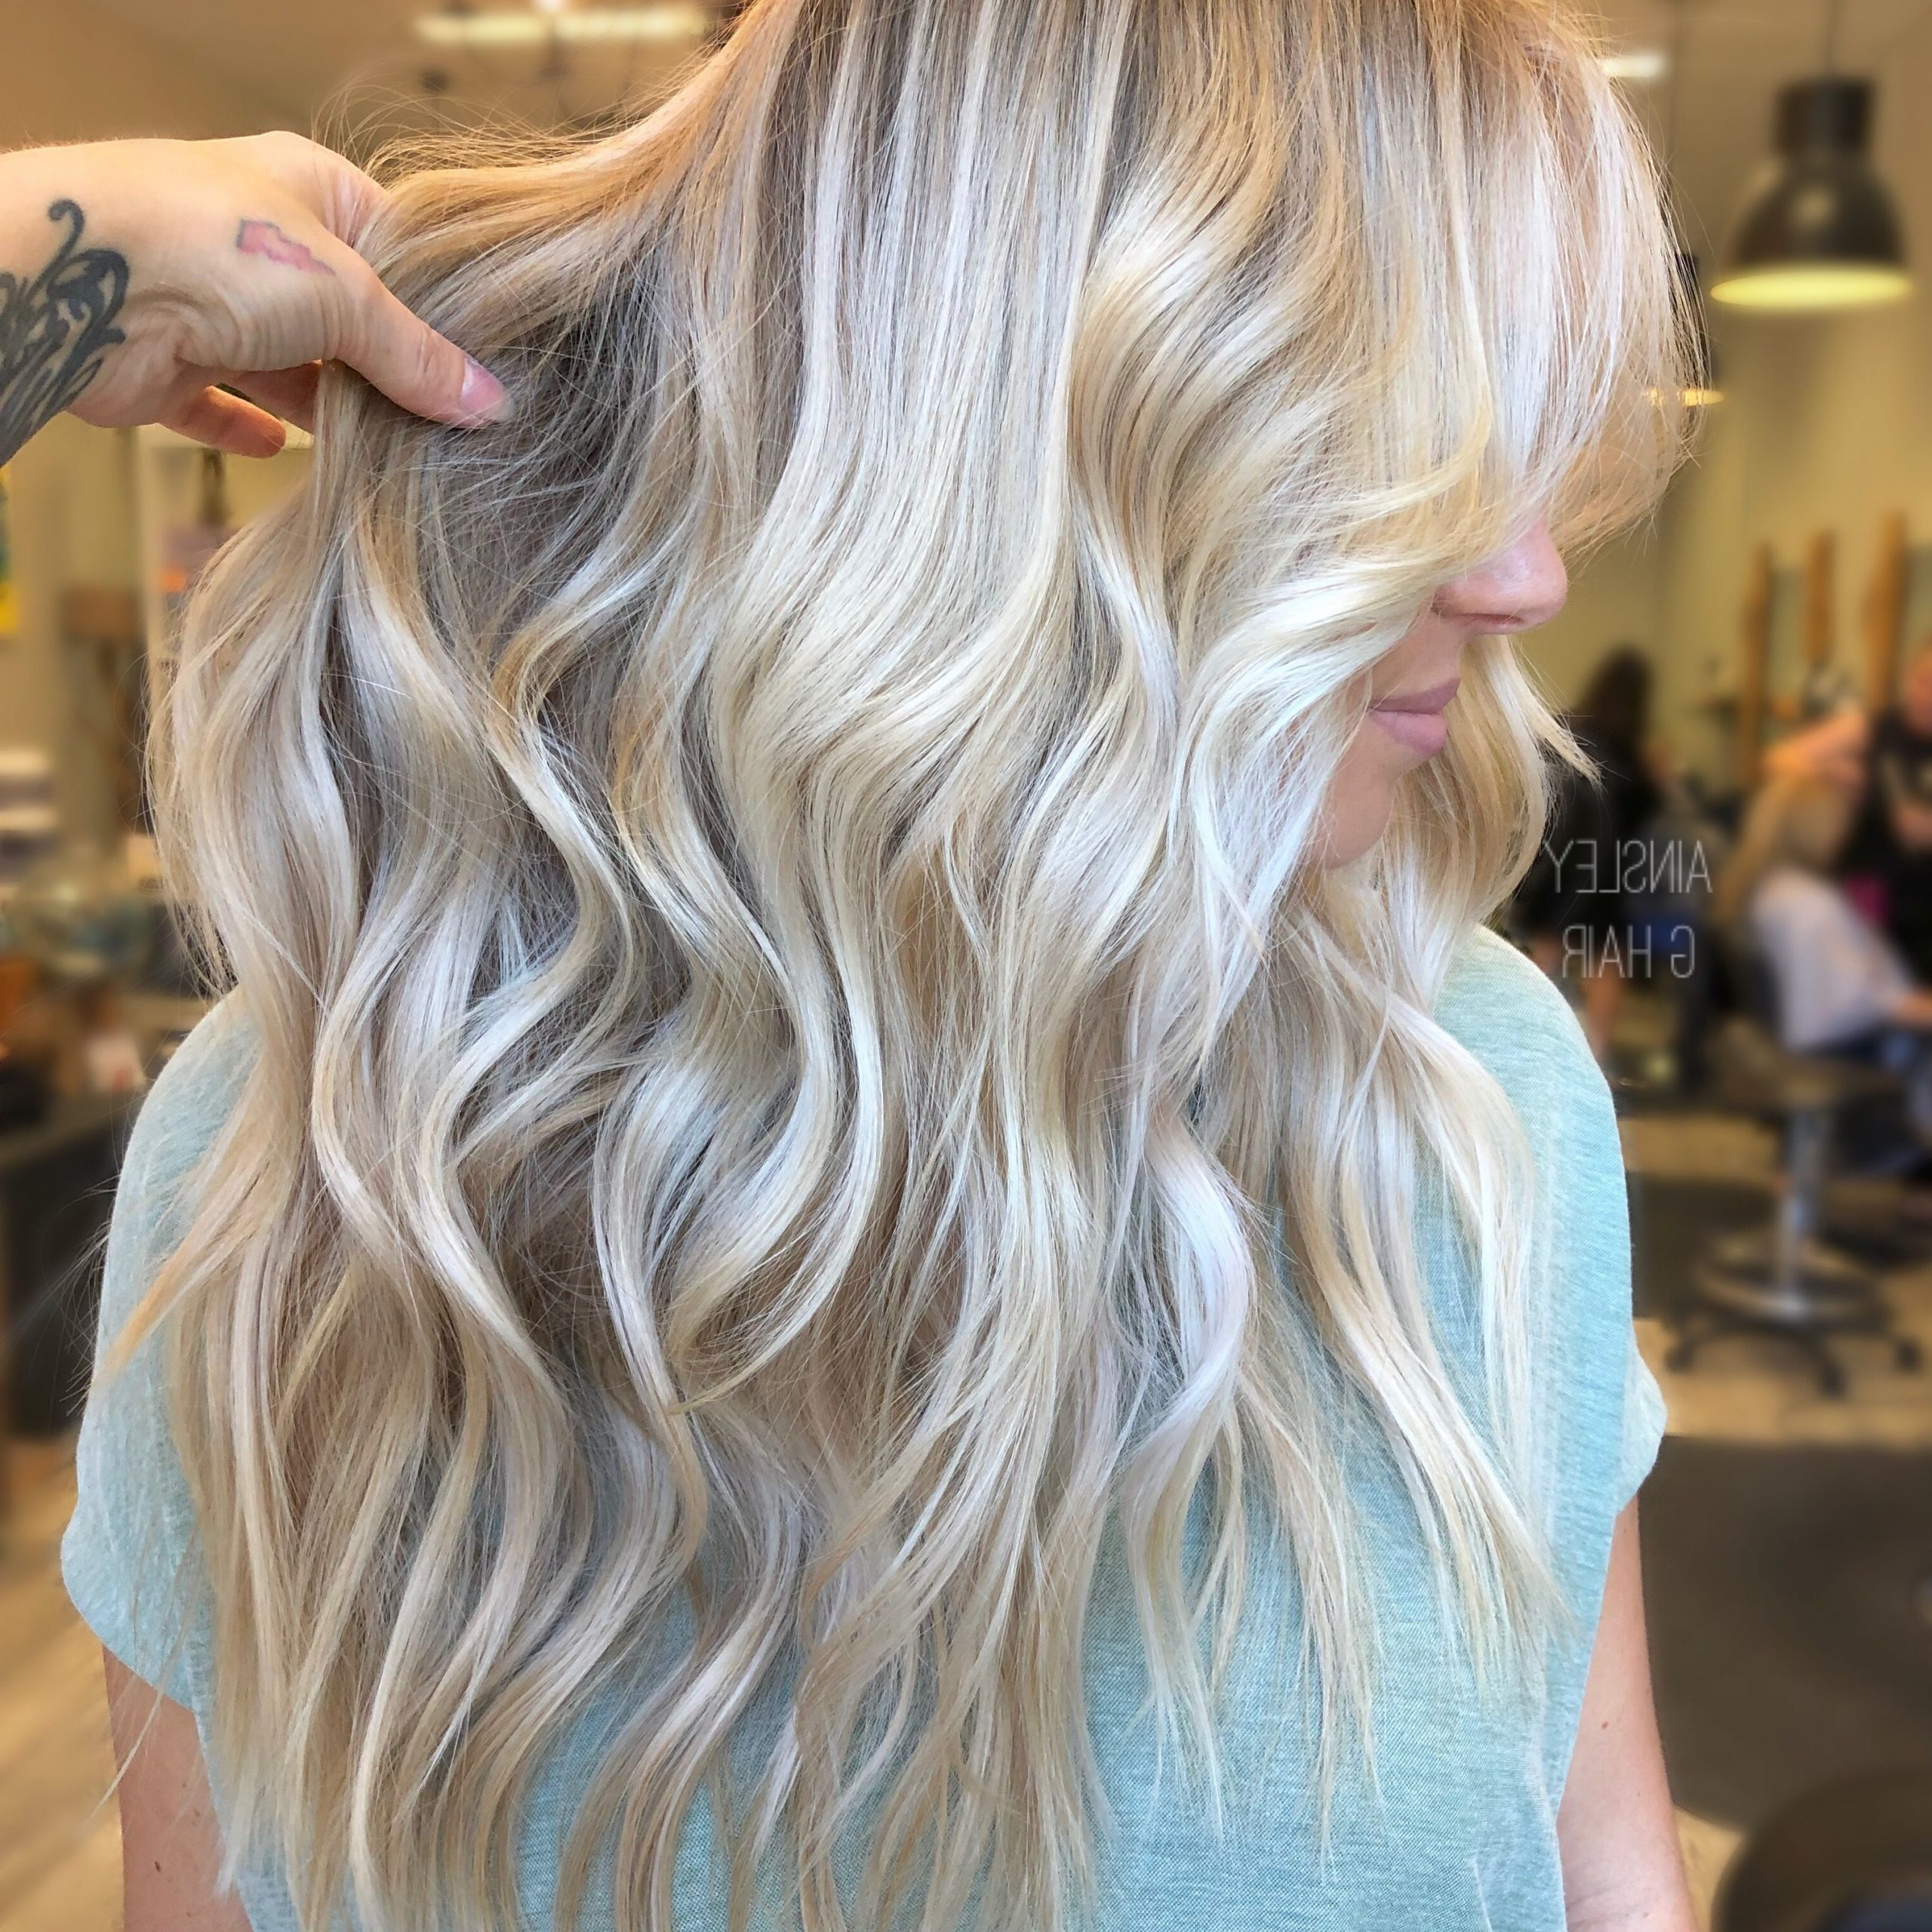 2017 Golden Blonde Balayage On Long Curls Hairstyles In Blonde, Blonde Hair, Balayage, Blonde Balayage, Undone (View 3 of 20)